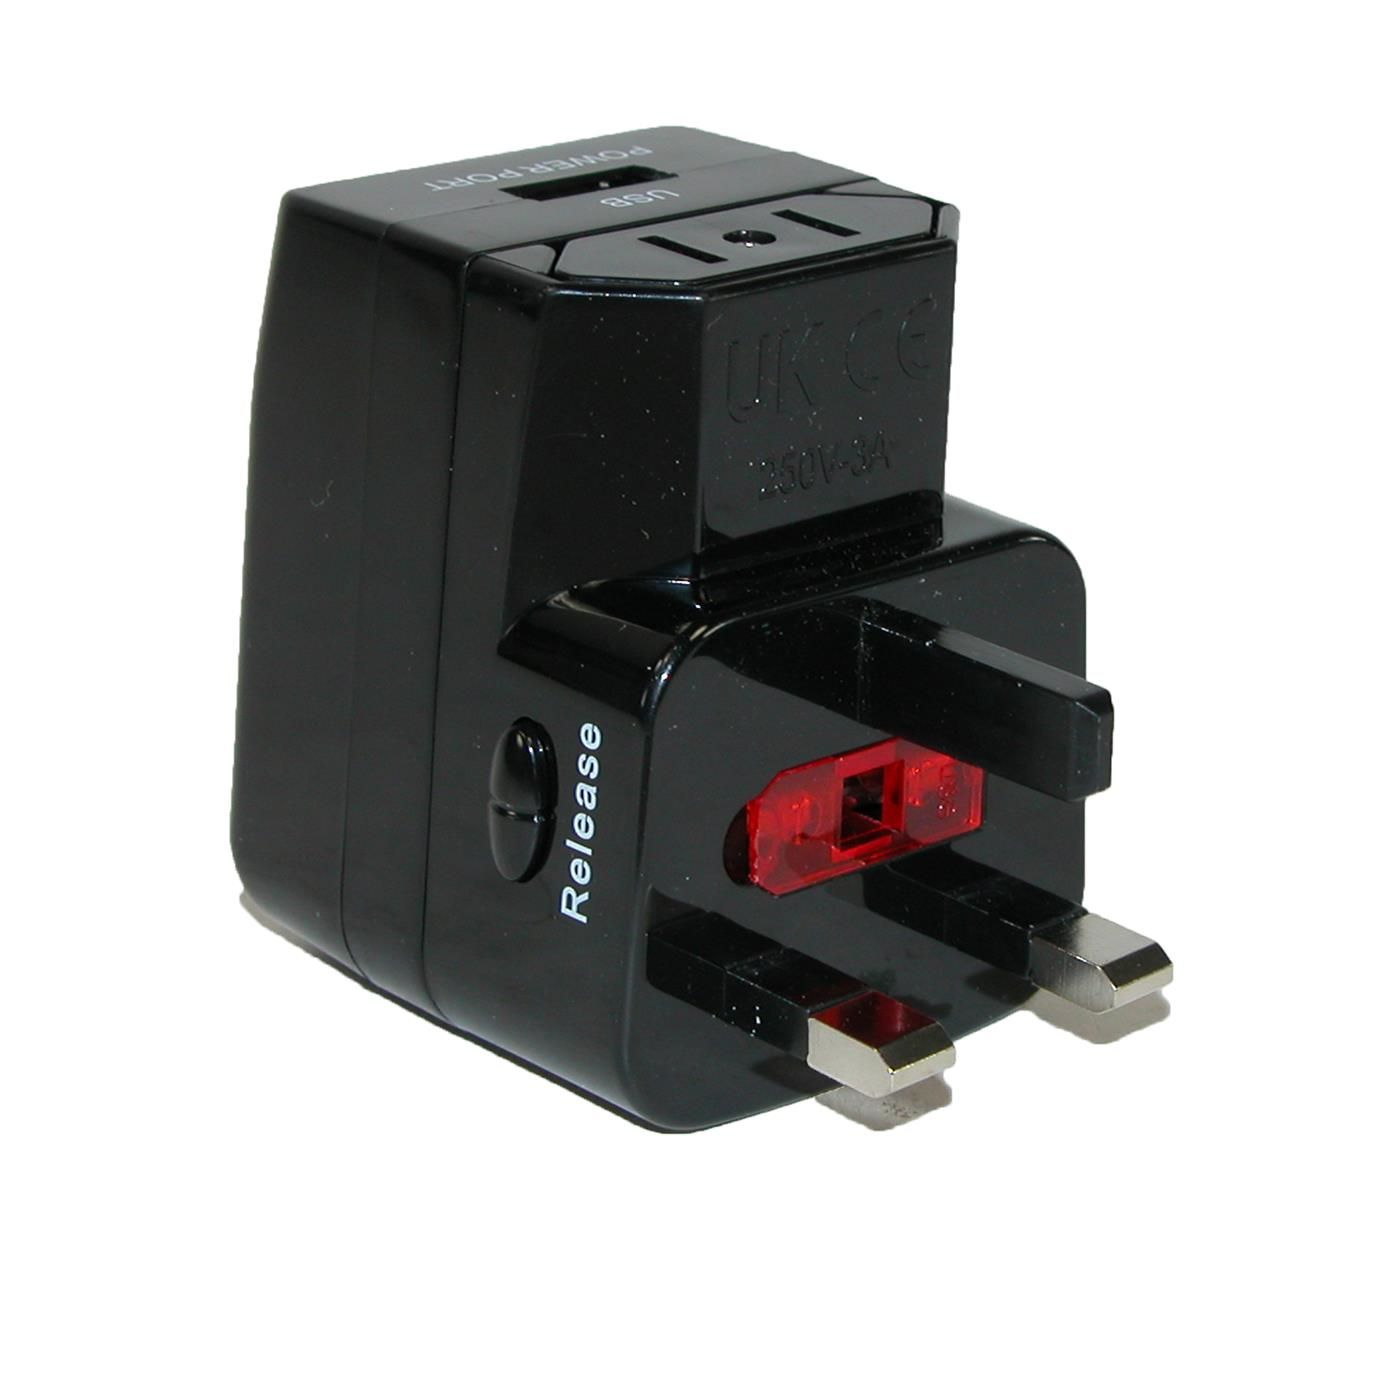 This International Adapter Features A Usb Charge Surge Protector And Converts Most 2 Or 3 Prong Plugs To Fit Most Sockets International Adapter Usb Adapter